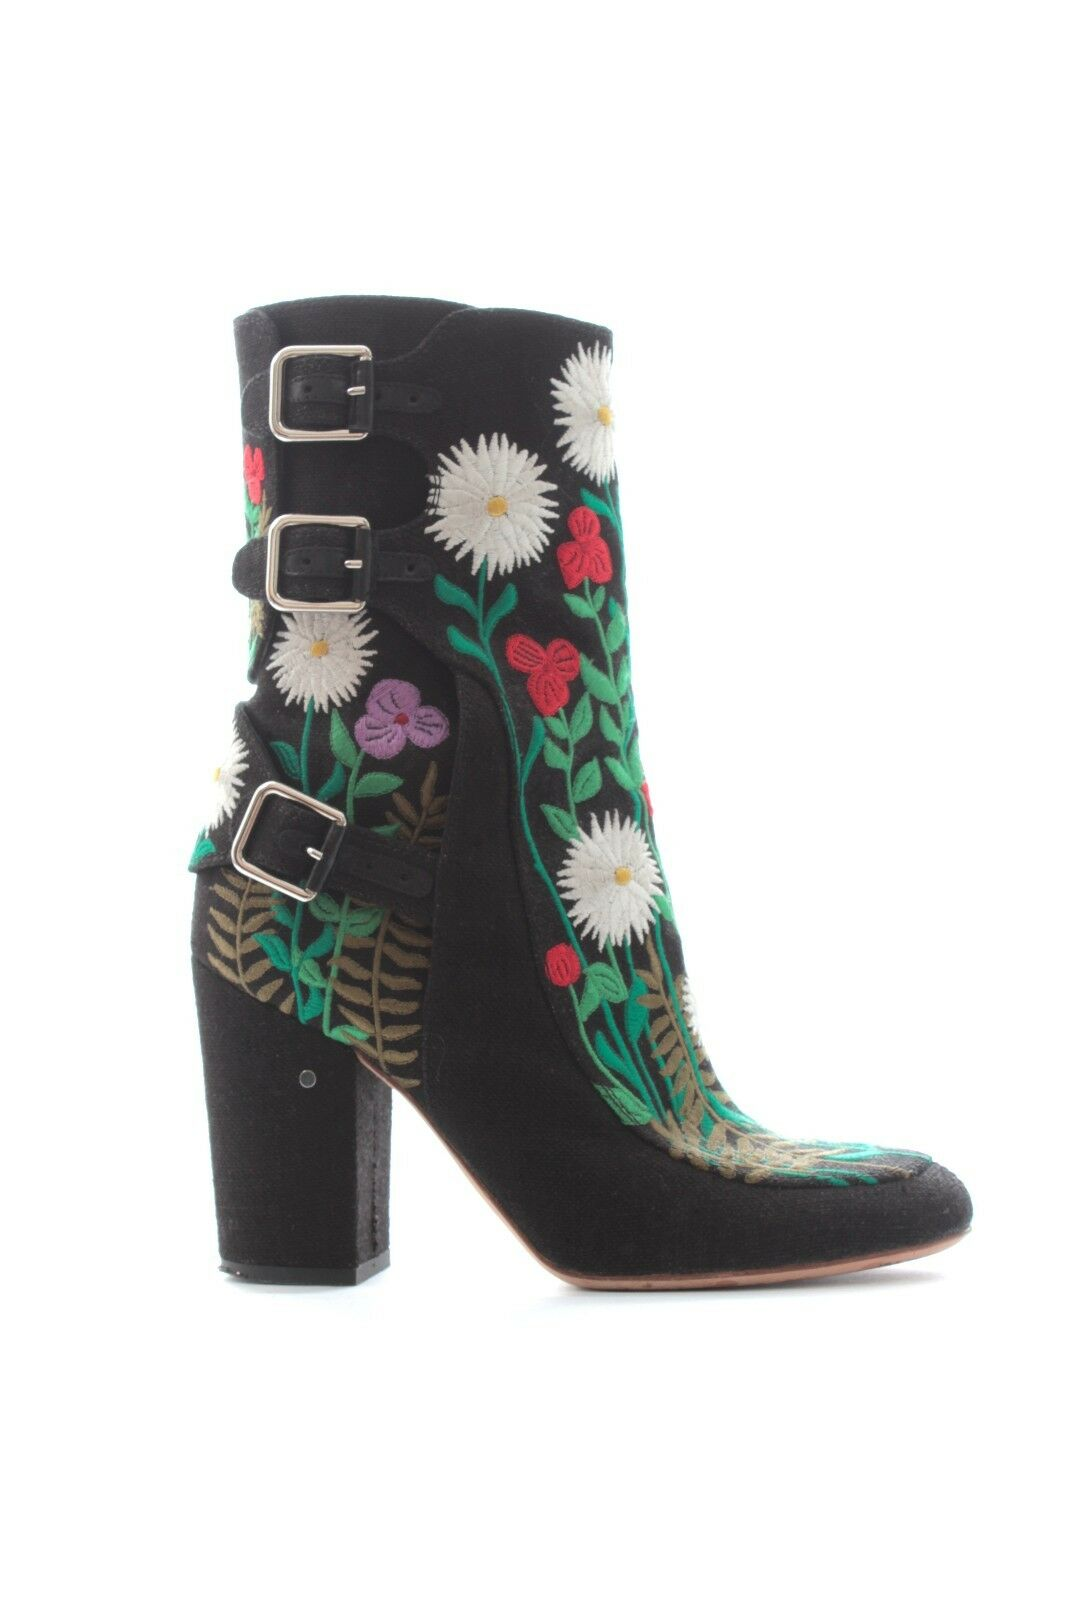 Laurence Dacade 'Merli' Floral-Embroidered Boots   Black